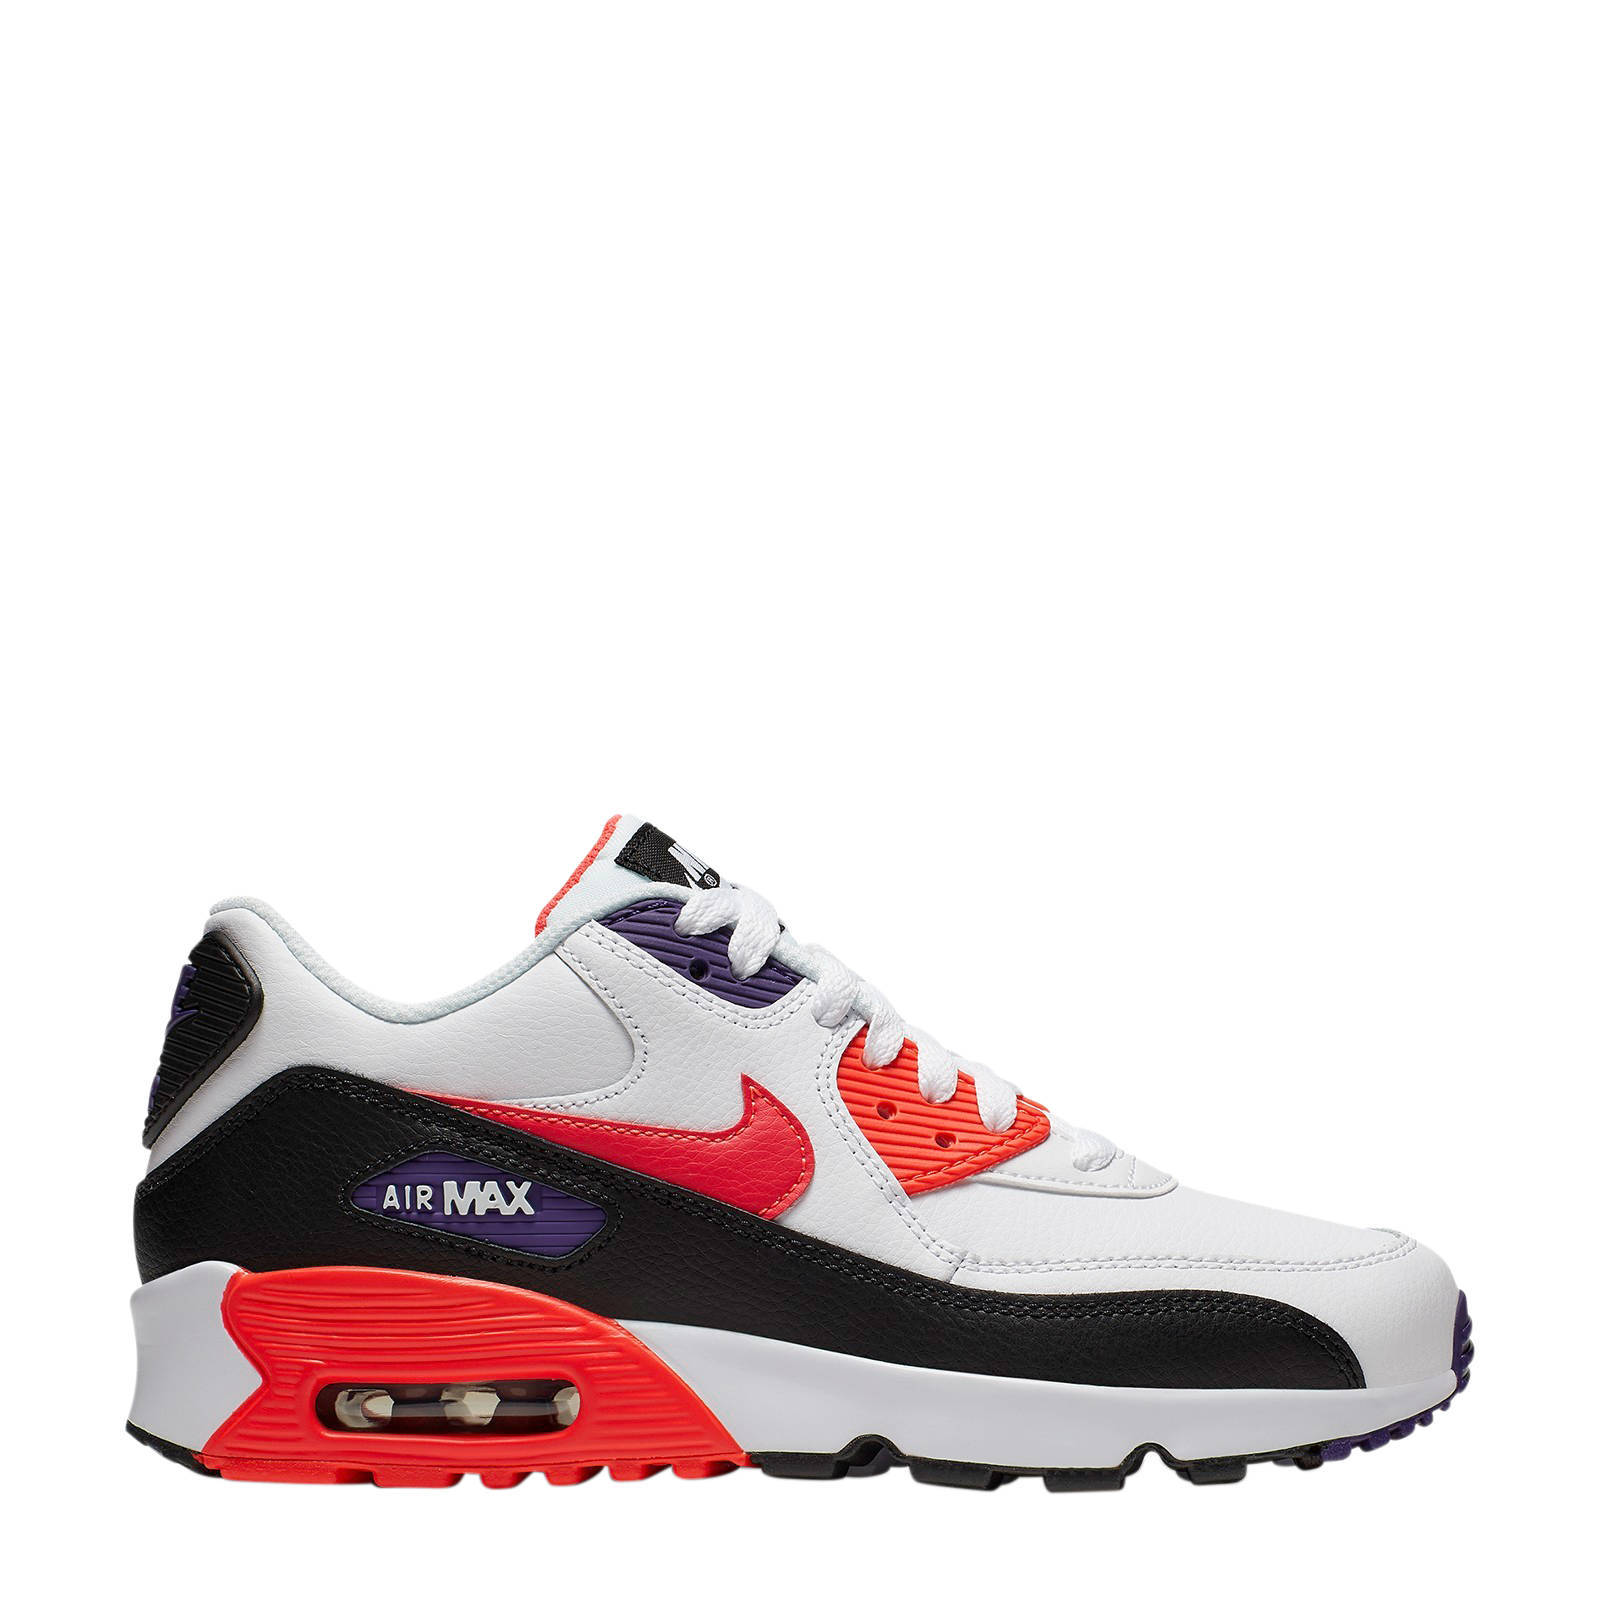 nike air max rood zwart wit